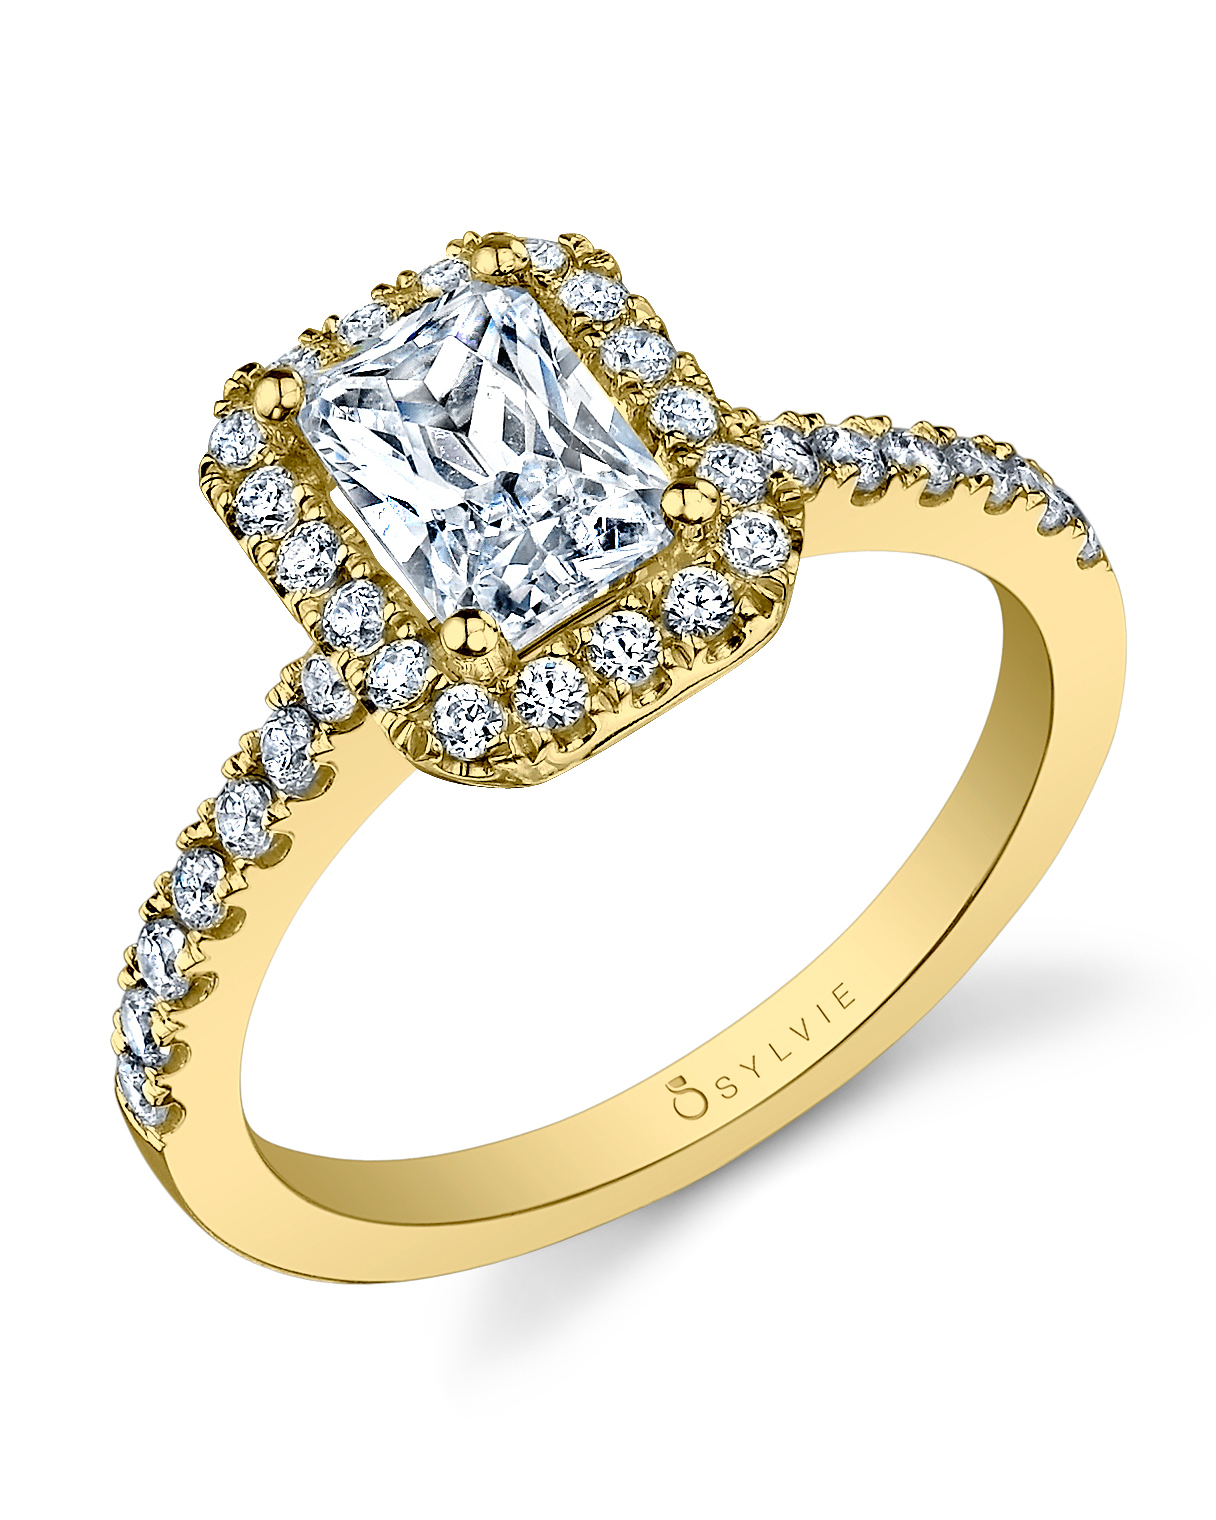 sylvie-collection-yellow-gold-emerald-cut-center-stone-engagement-ring-0816.jpg